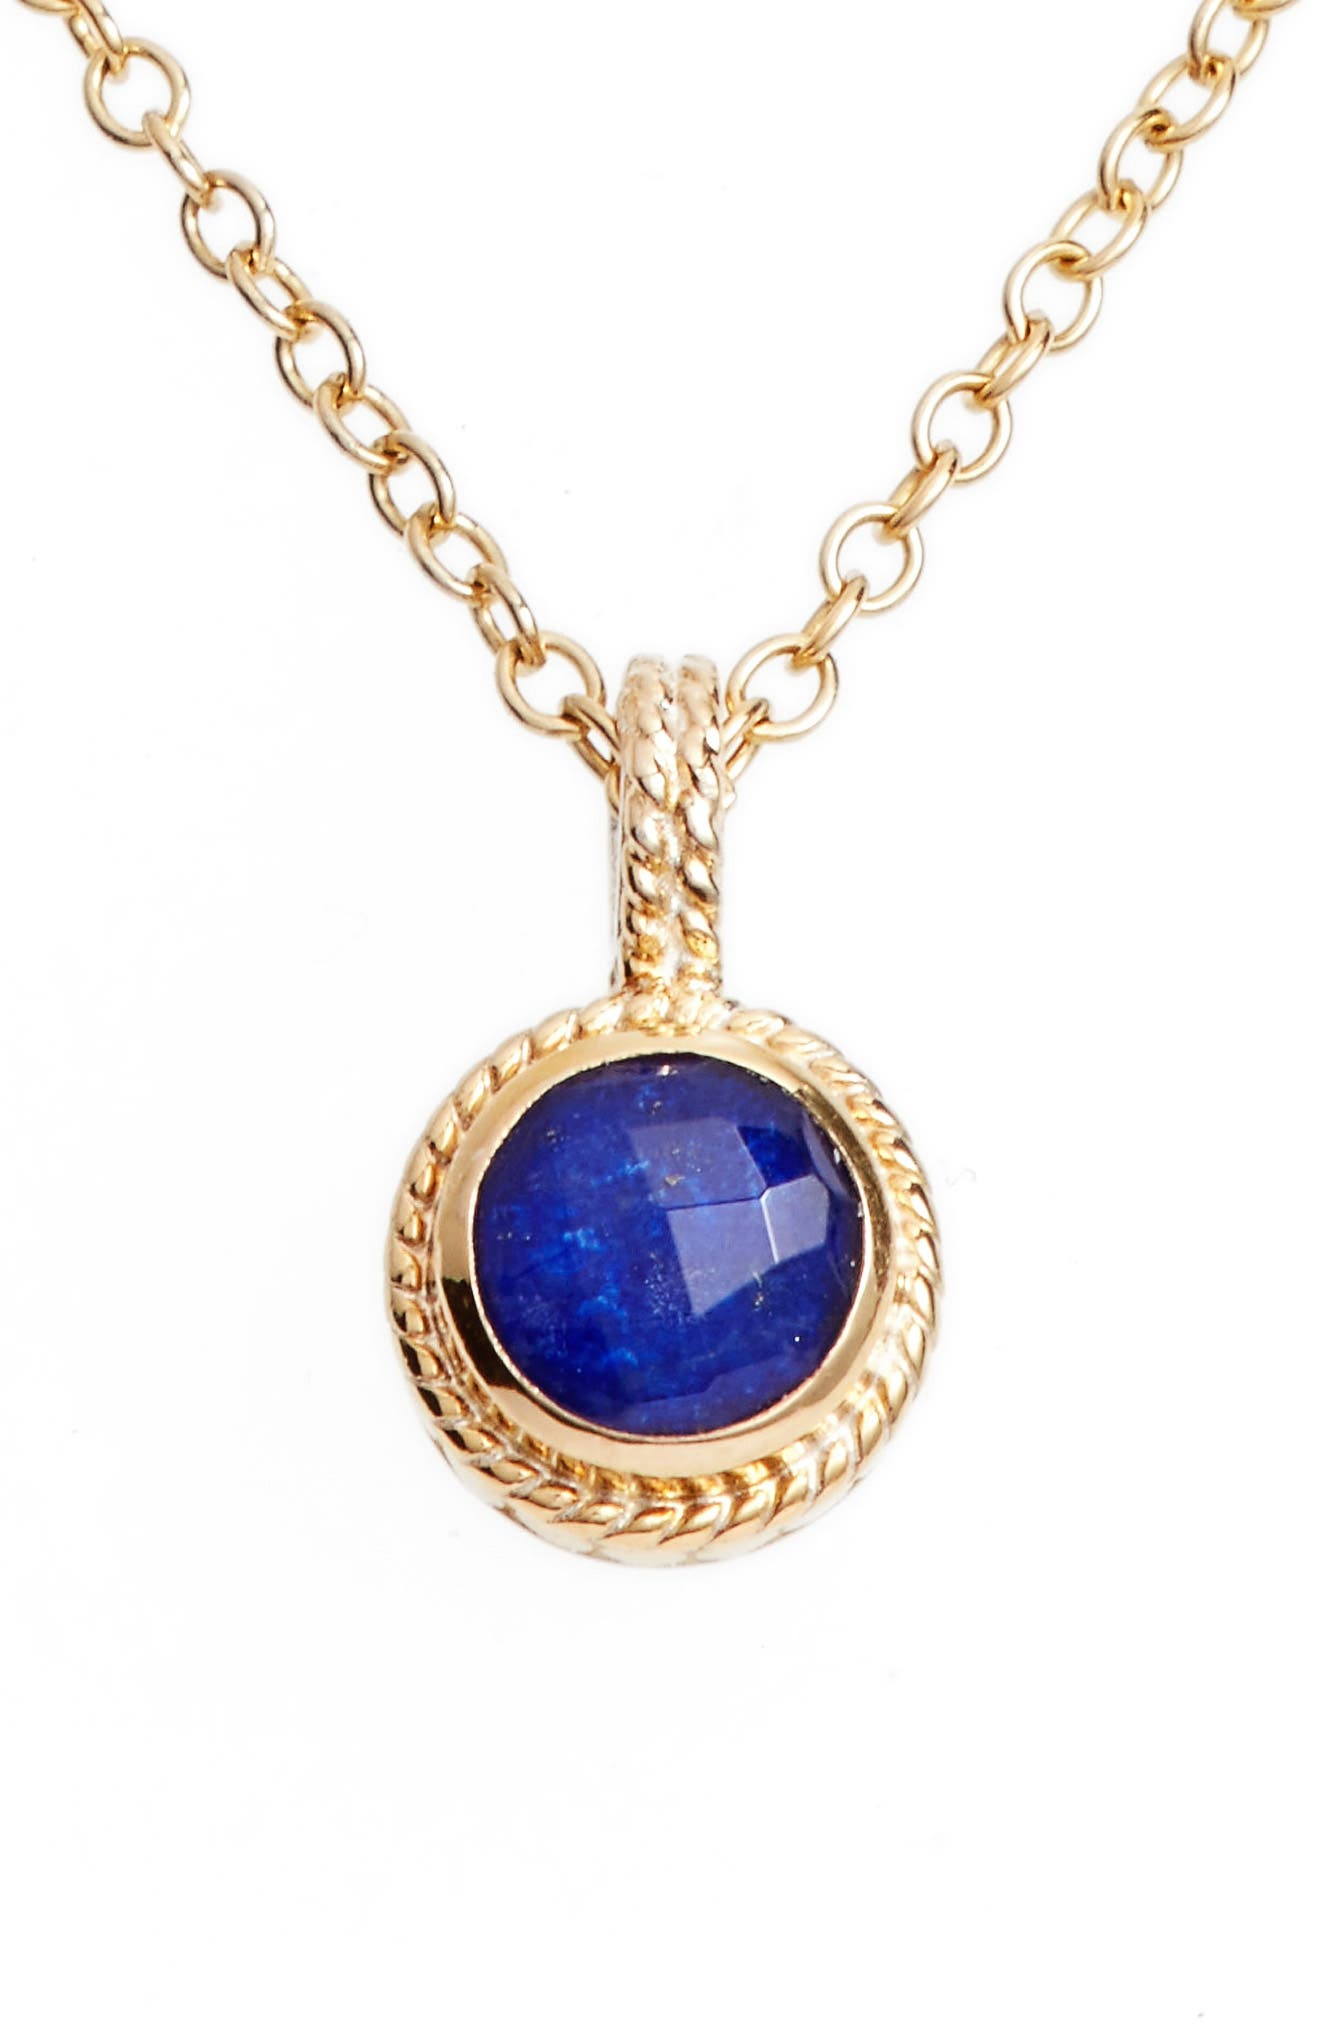 Semiprecious Stone Round Drop Pendant Necklace,                             Main thumbnail 1, color,                             405